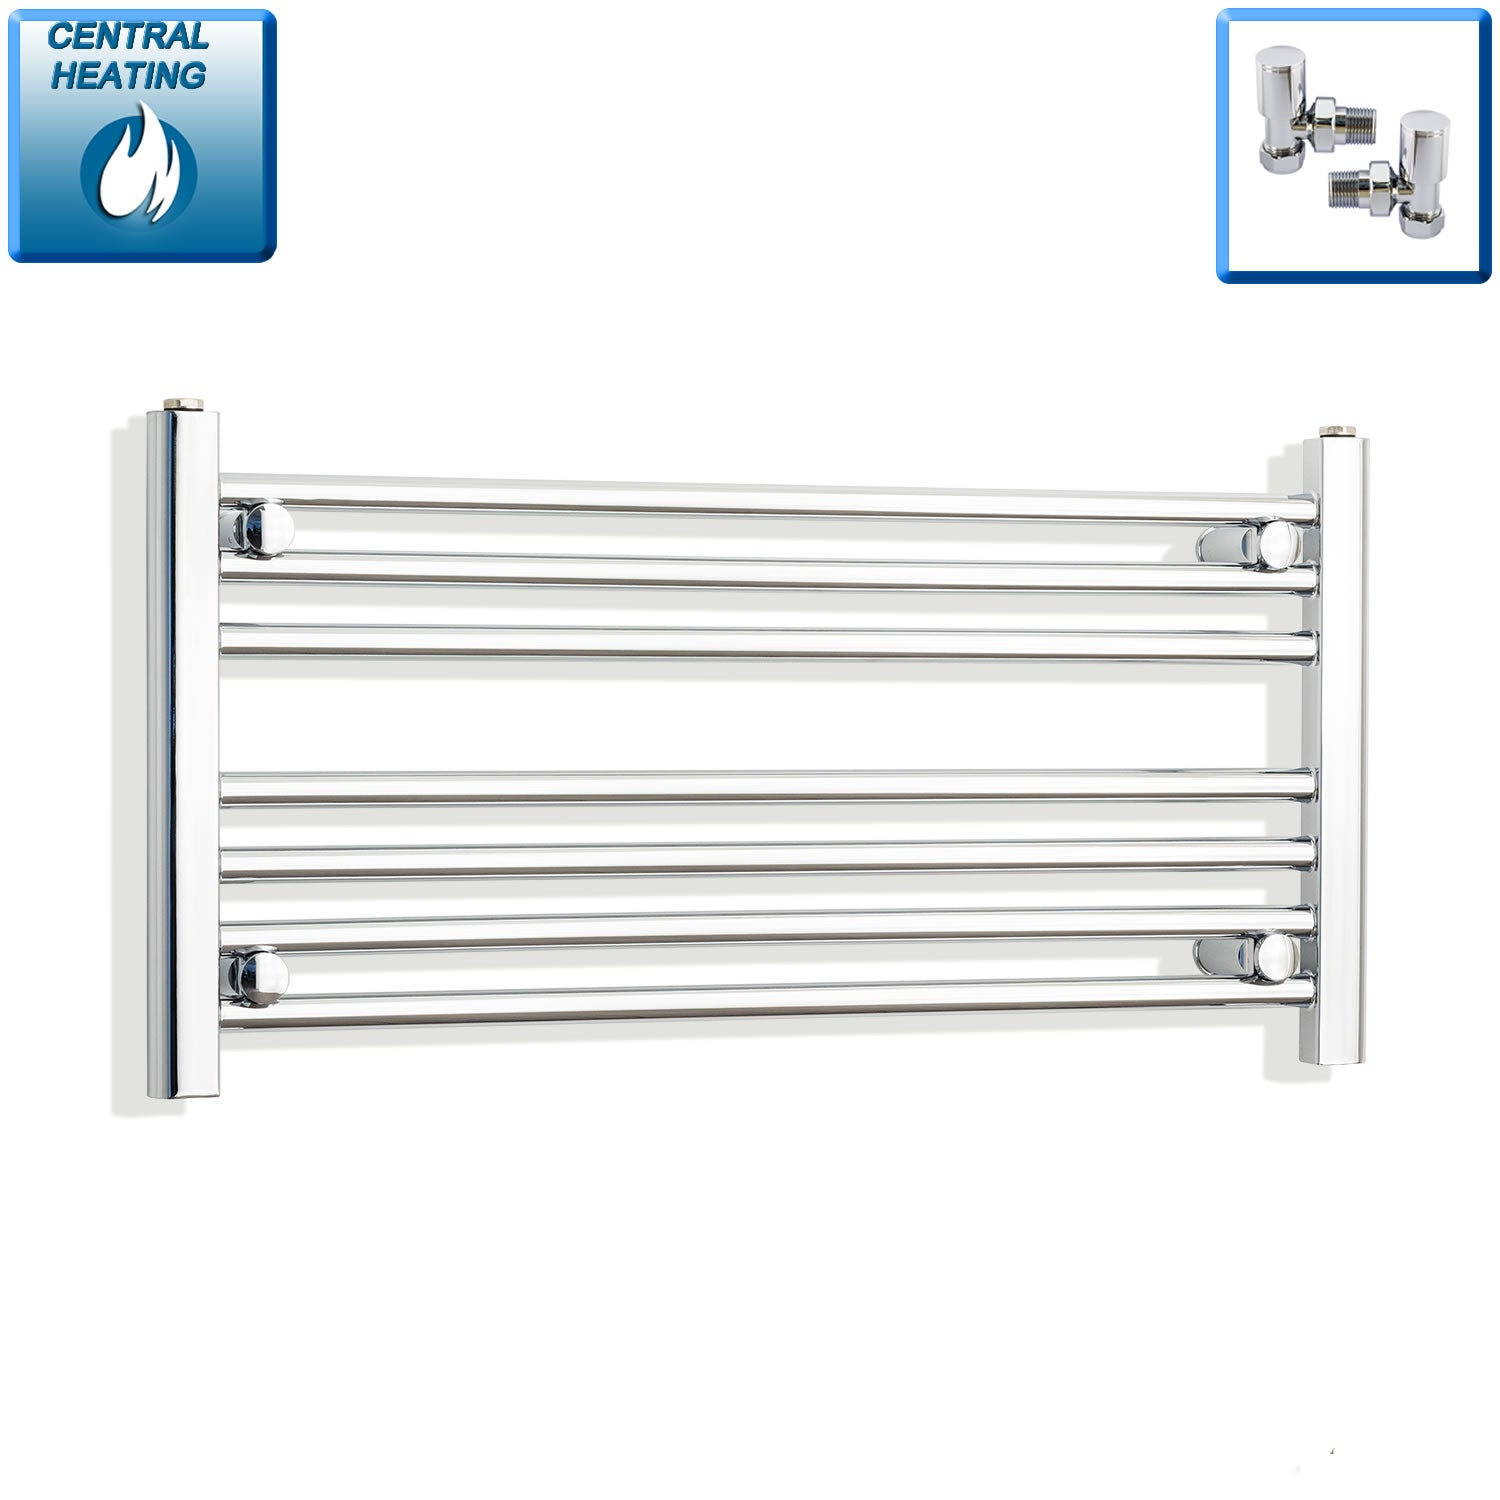 750mm Wide 400mm High Curved Chrome Heated Towel Rail Radiator HTR,With Angled Valve